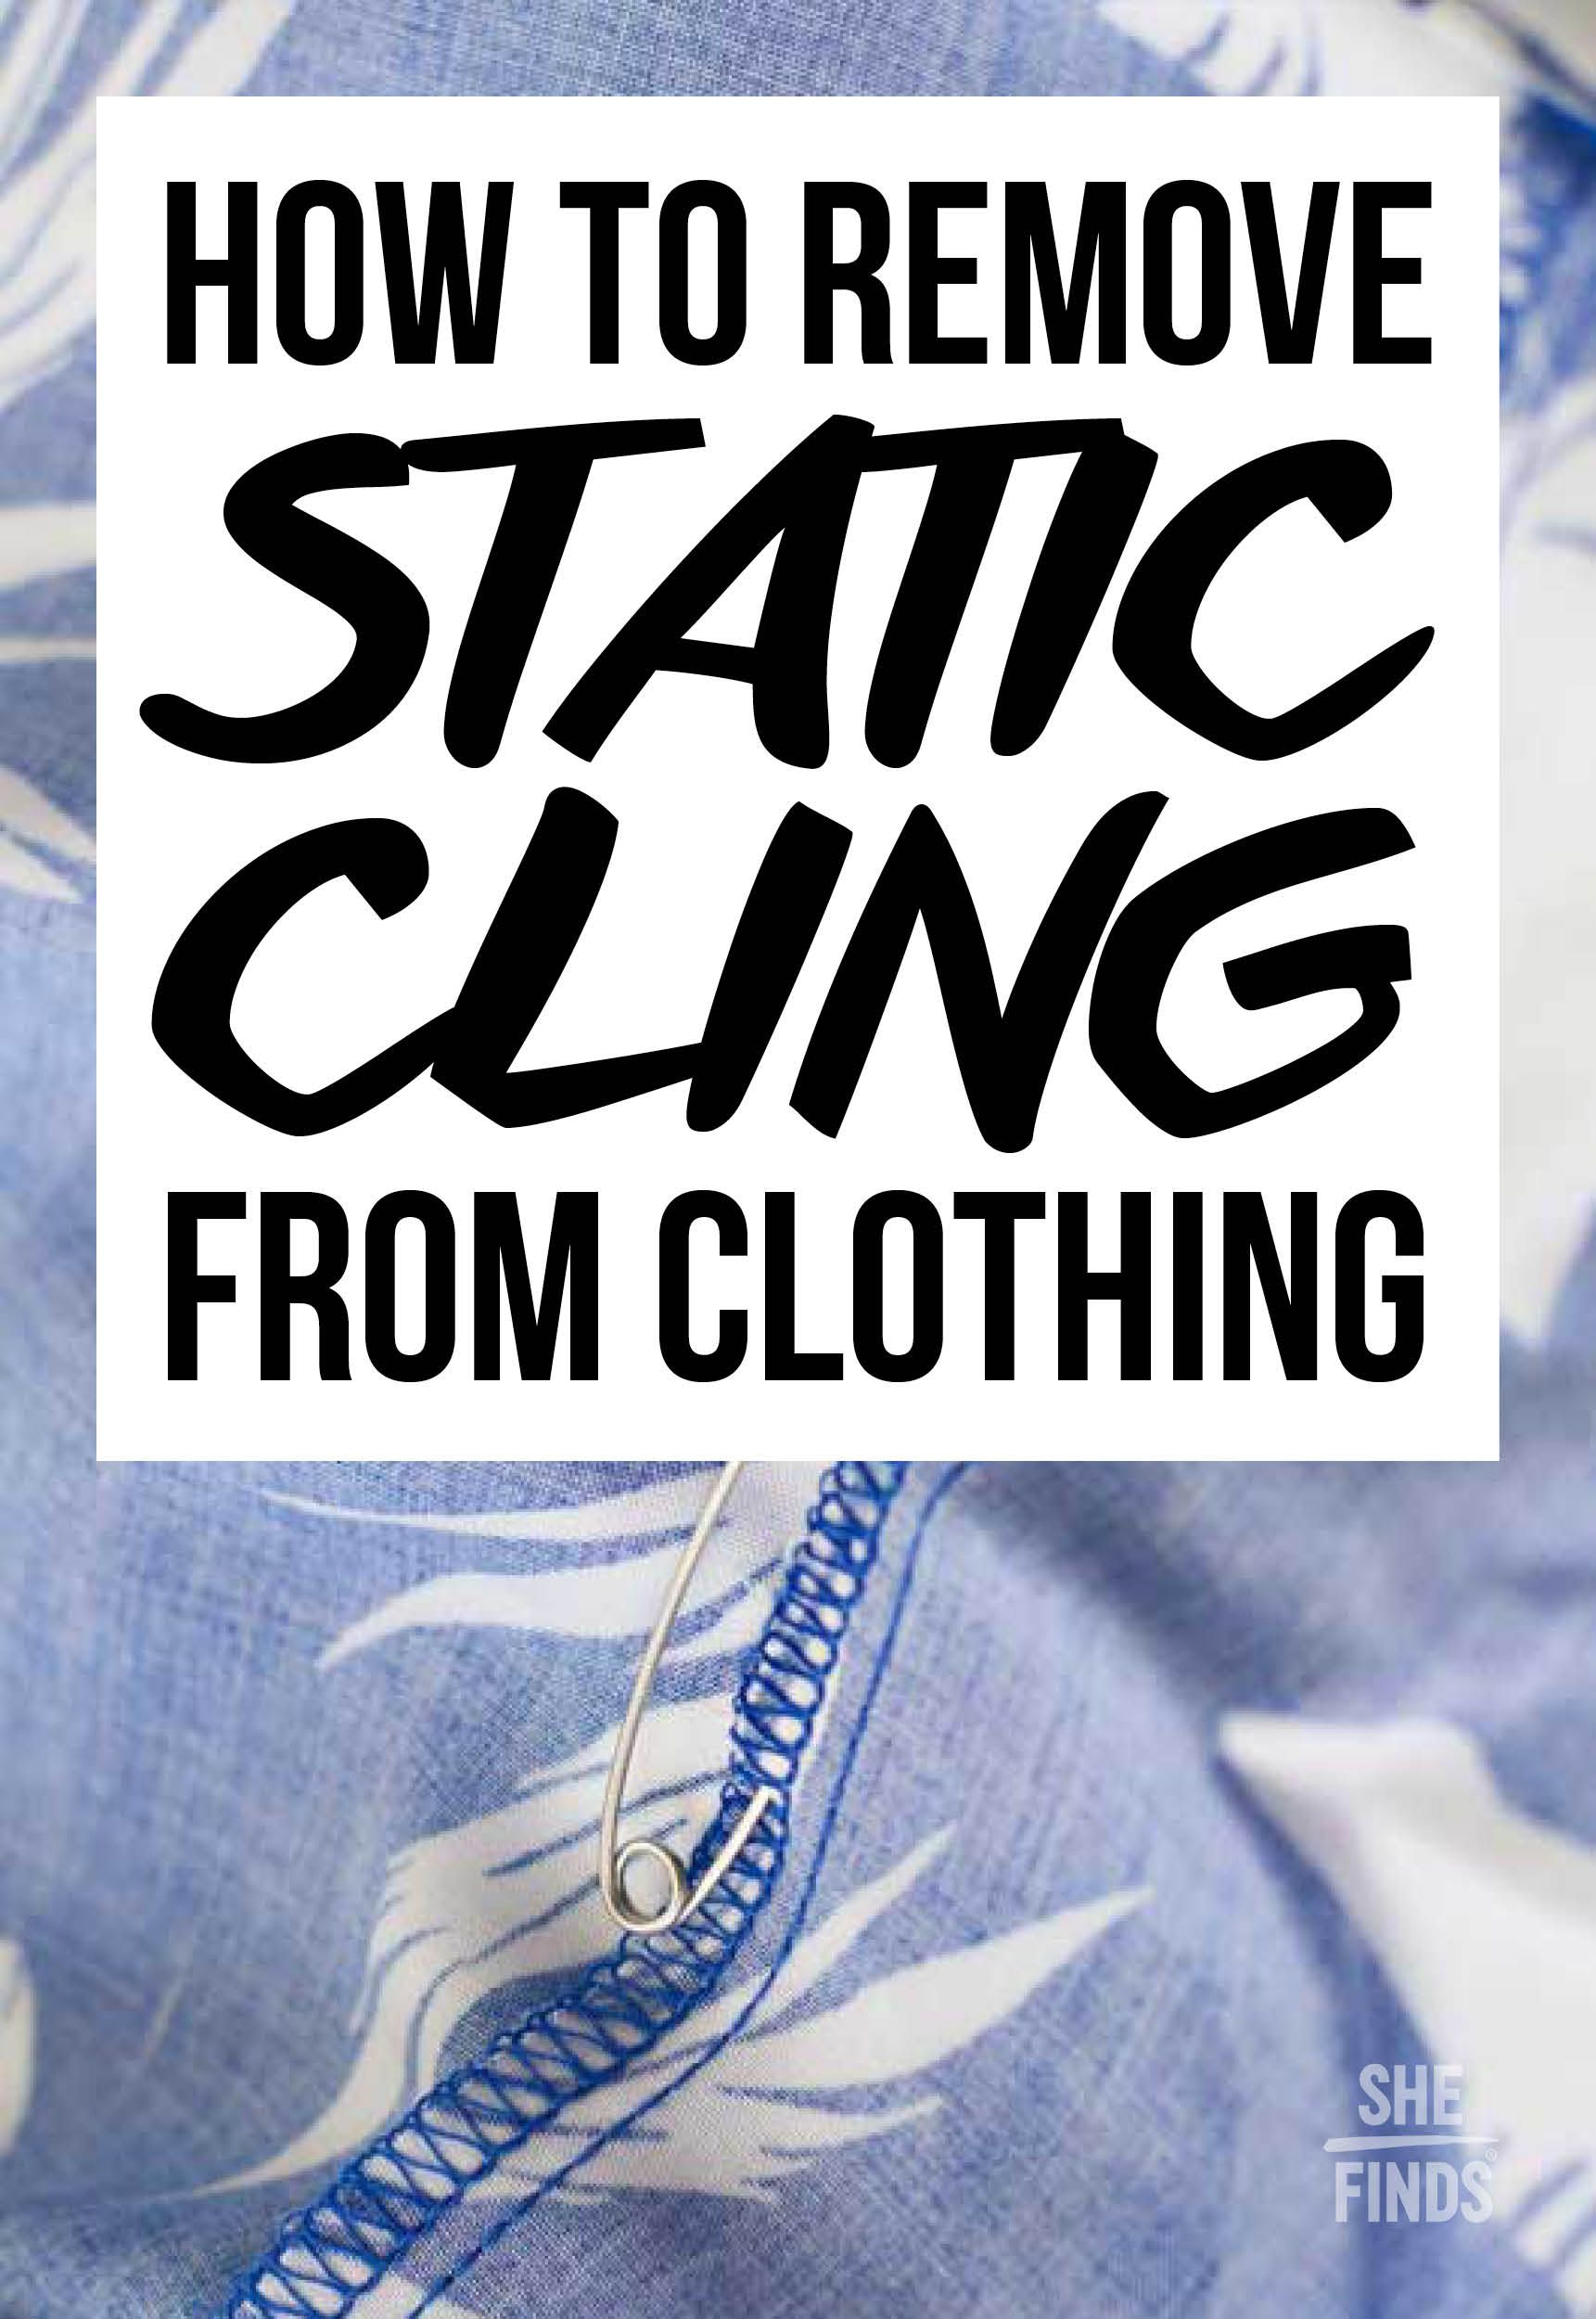 How To Remove Static Cling With Images Static Cling How To